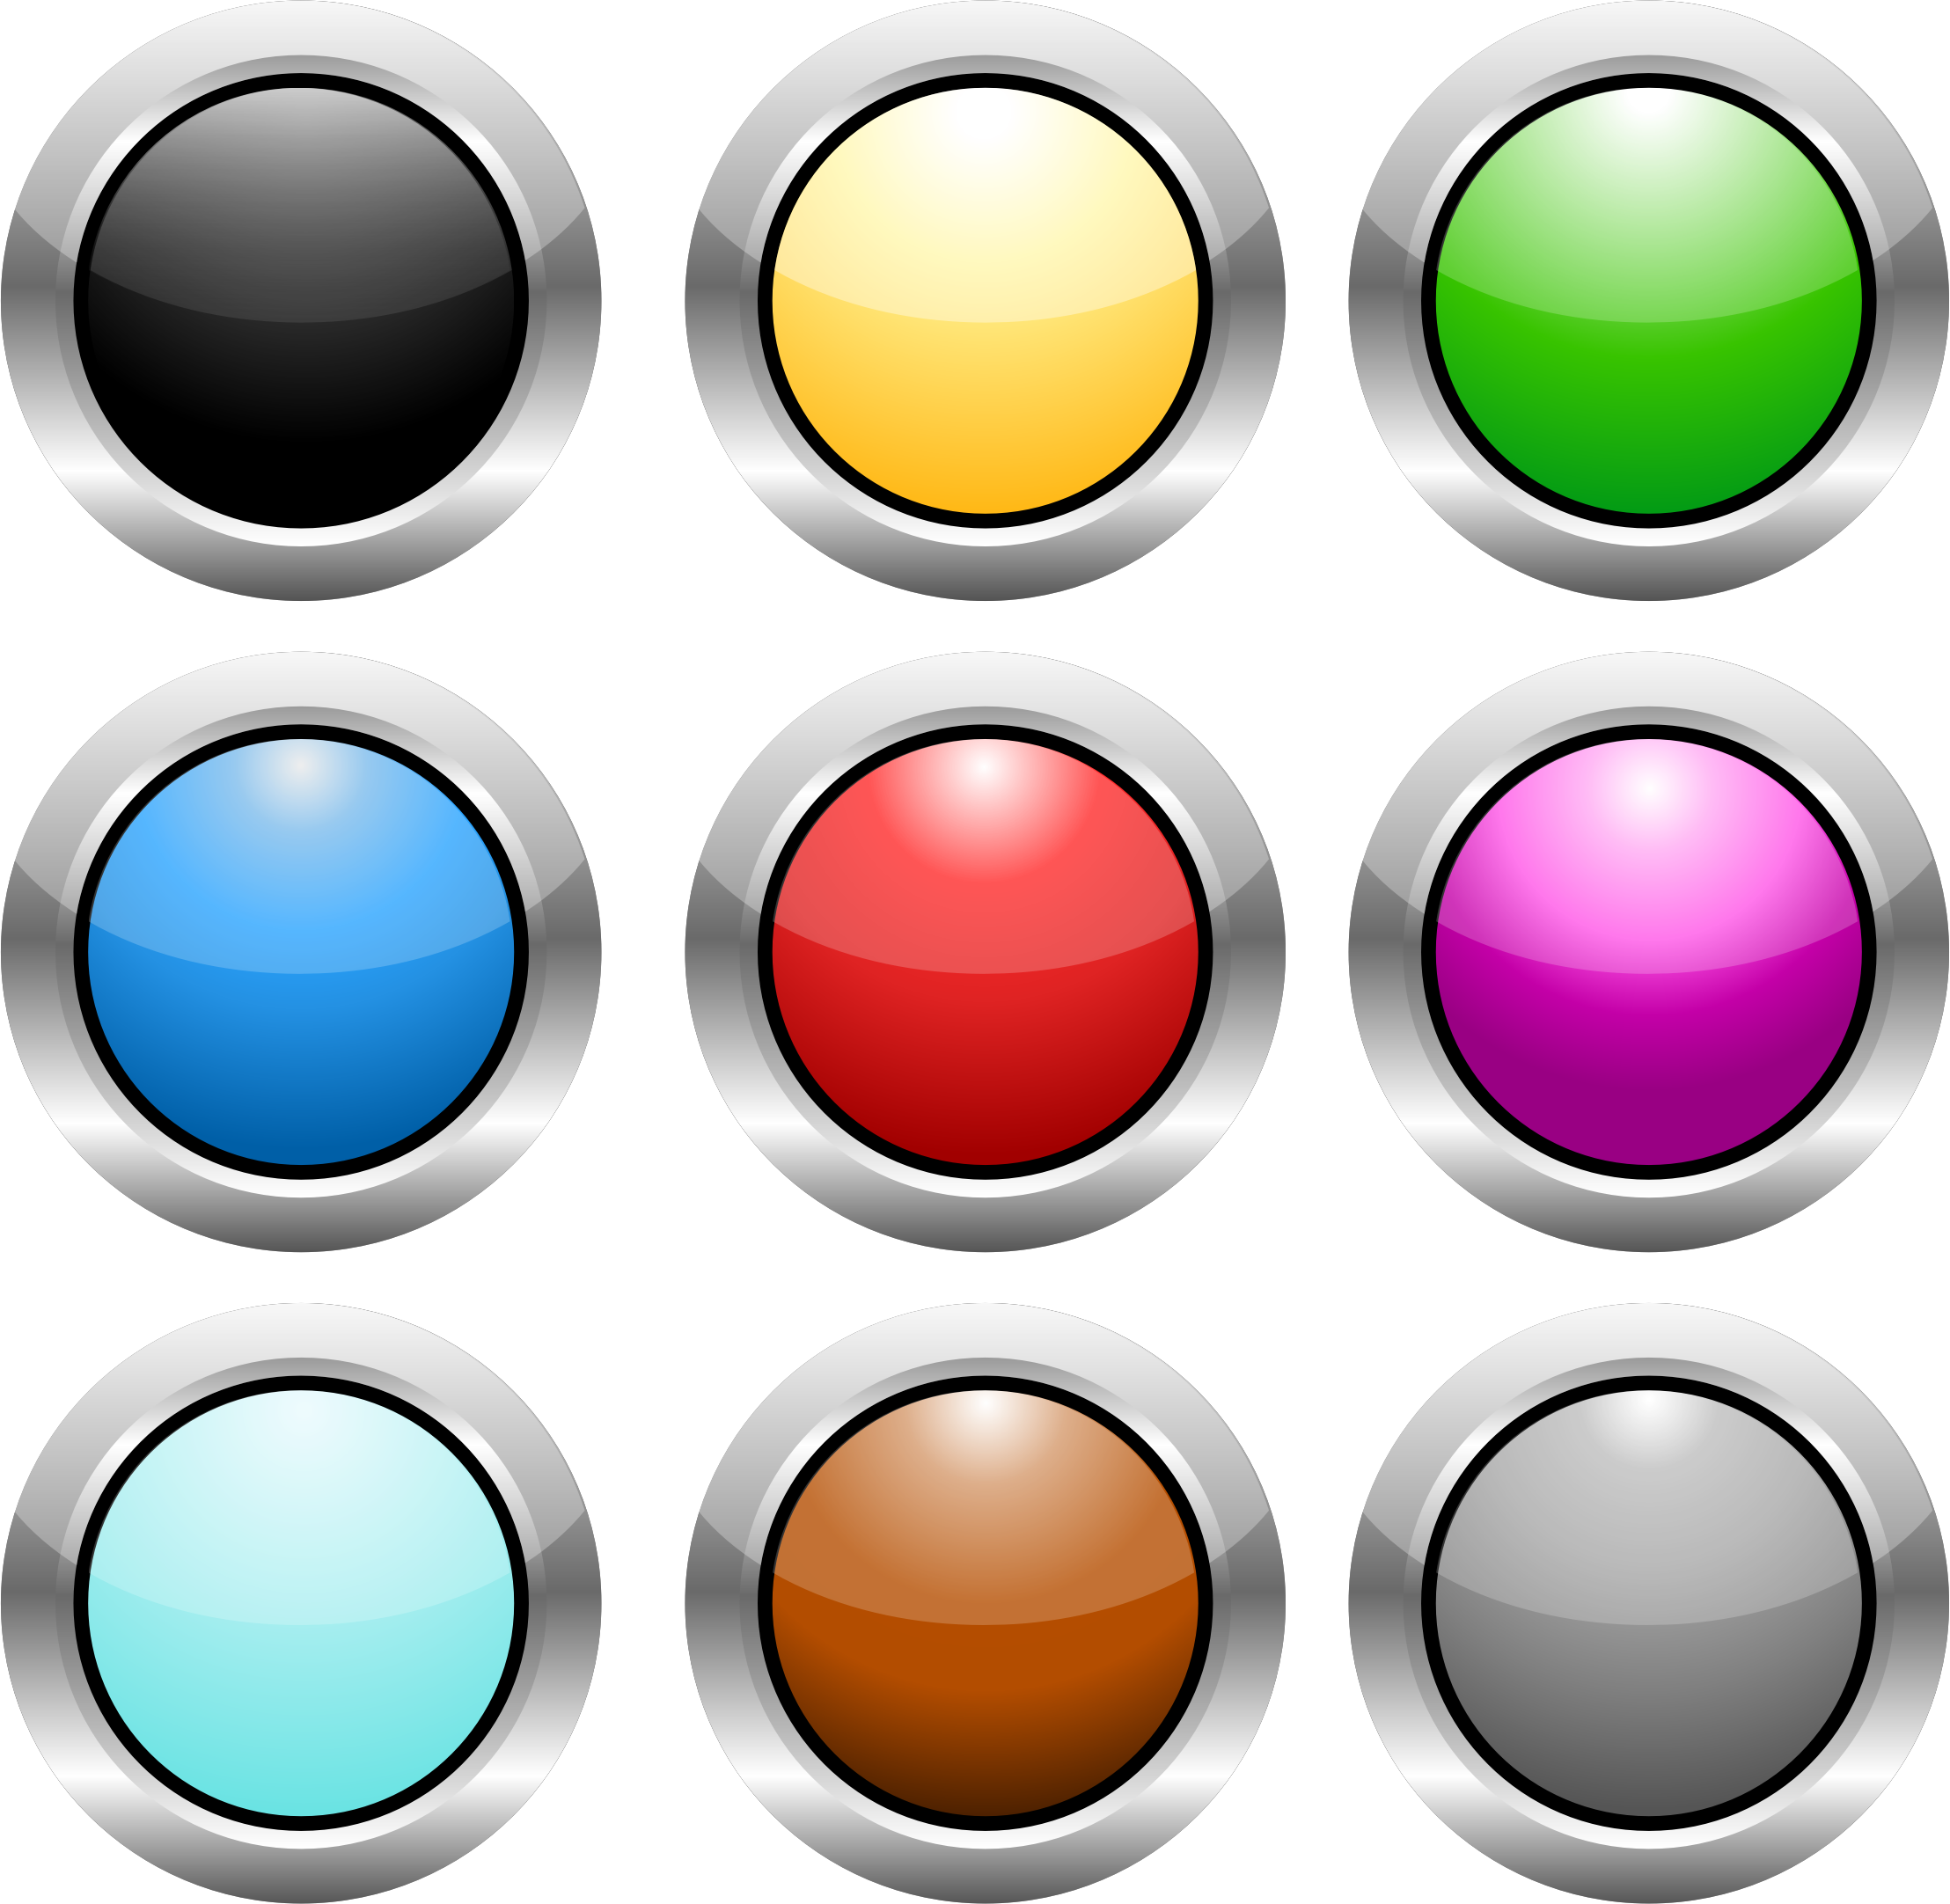 Buttons steel big image. Website clipart circle